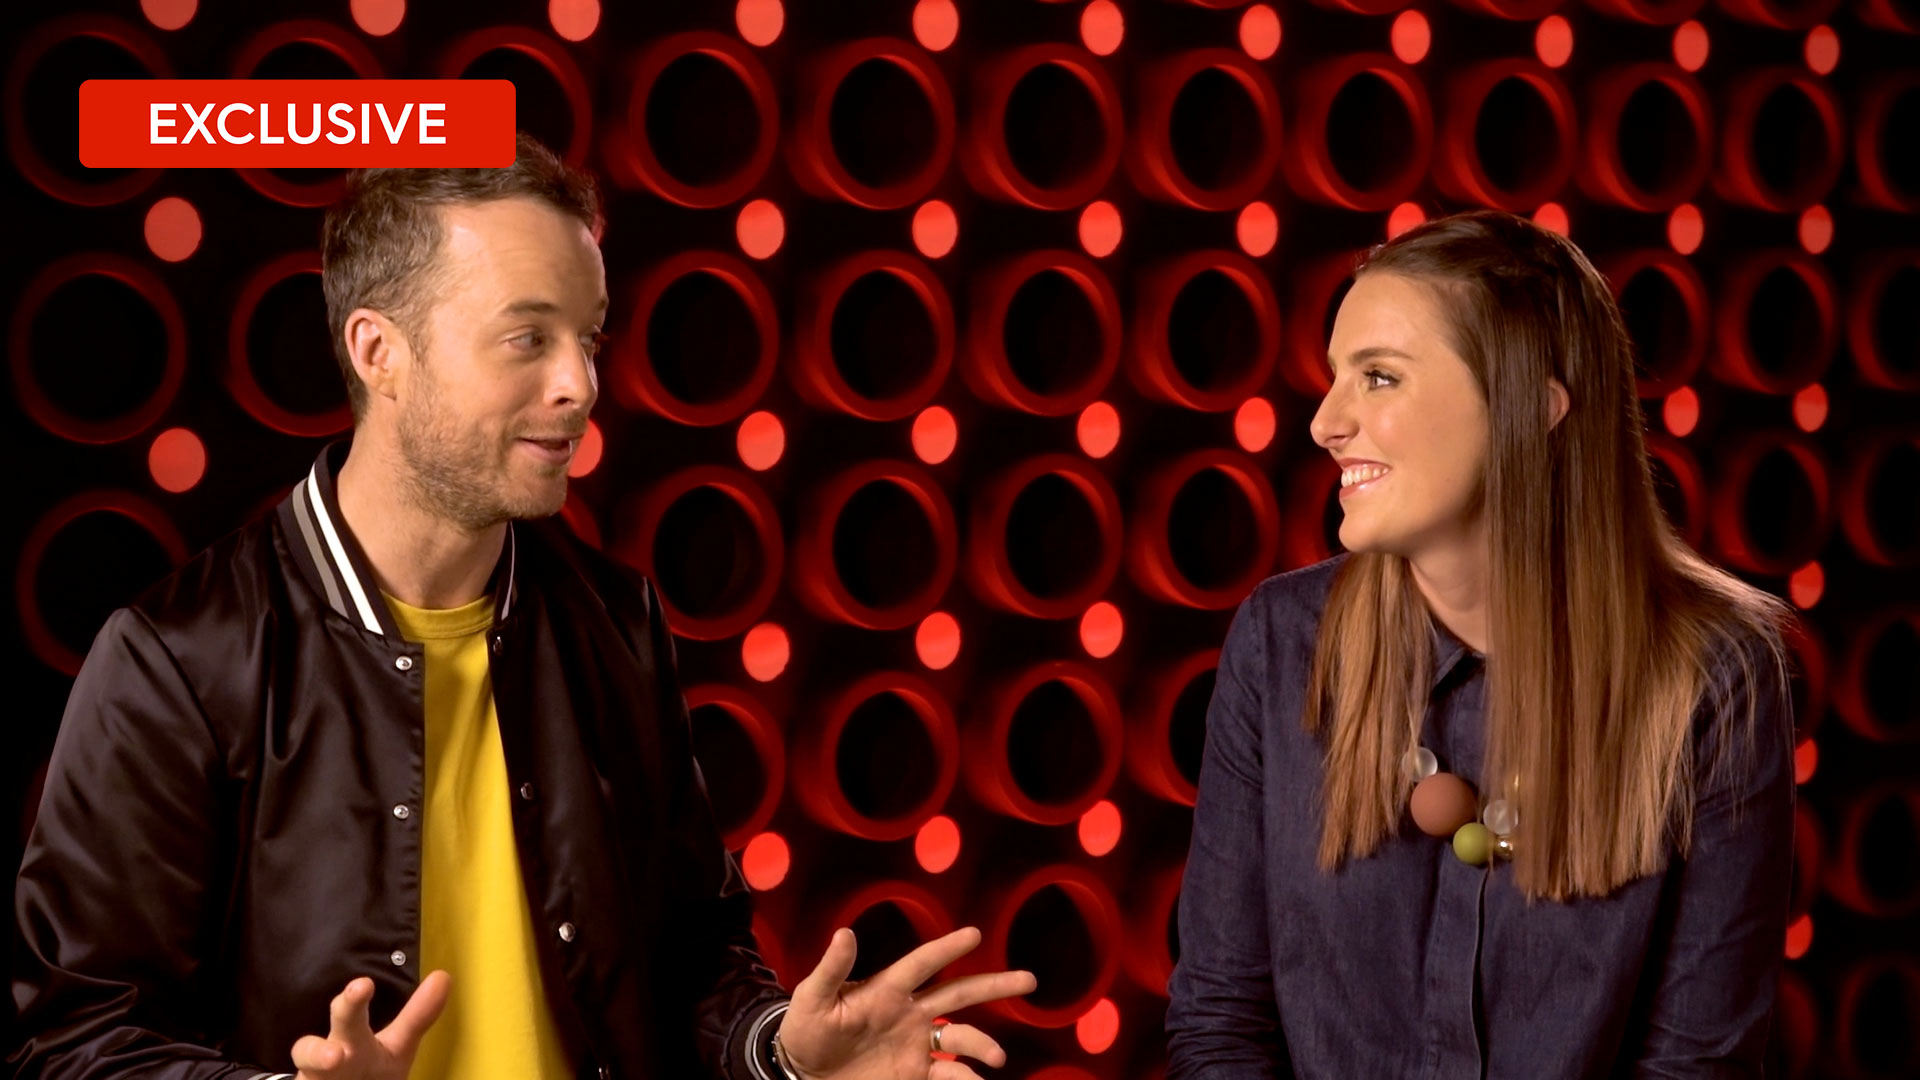 Exclusive: Hamish previews the Grand Finale with a special guest judge